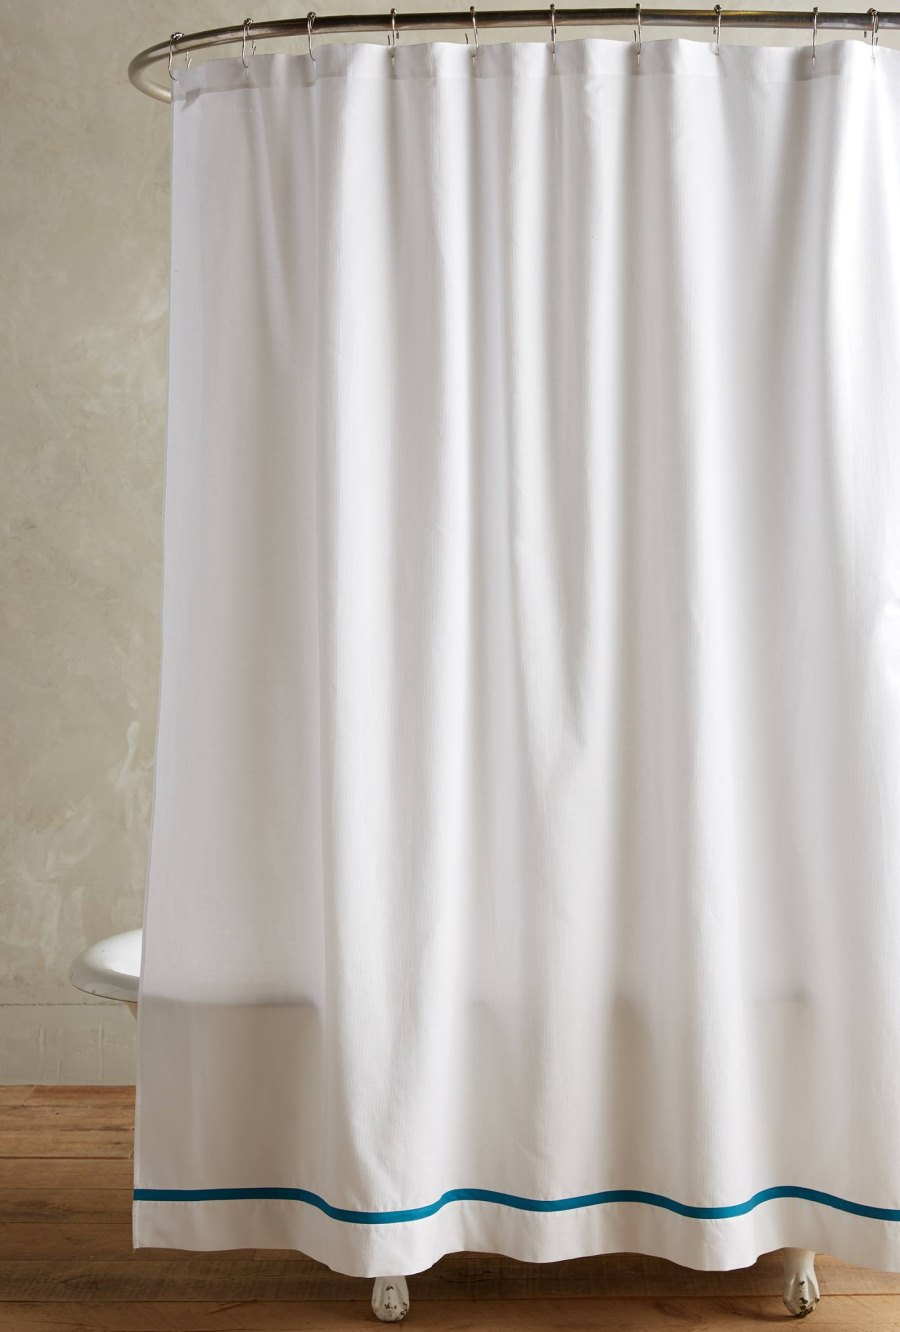 Clear Shower Curtain